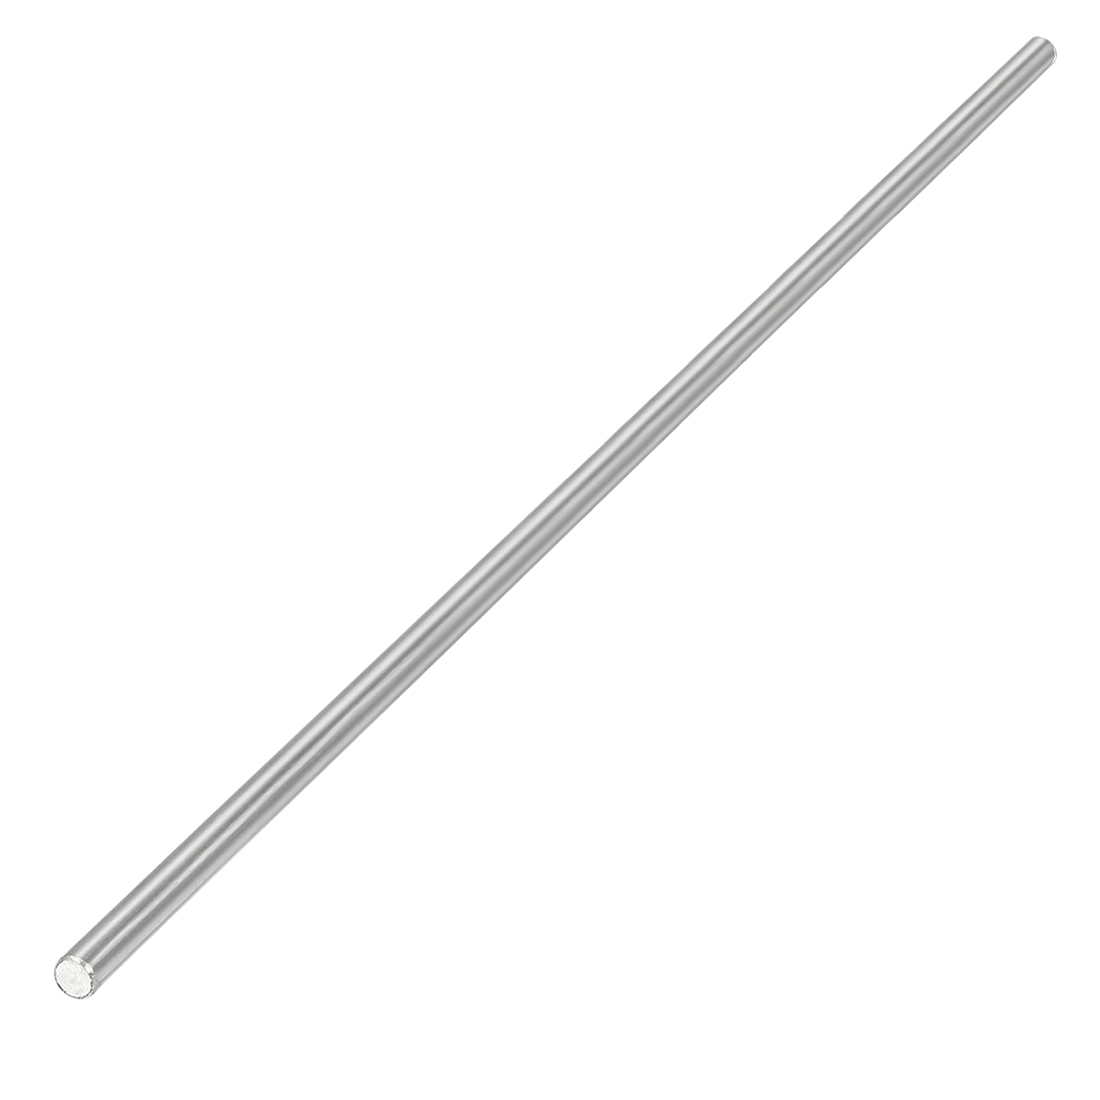 2.5mm Dia 170mm Length Stainless Steel Solid Round Shaft Rod for RC Model Toy